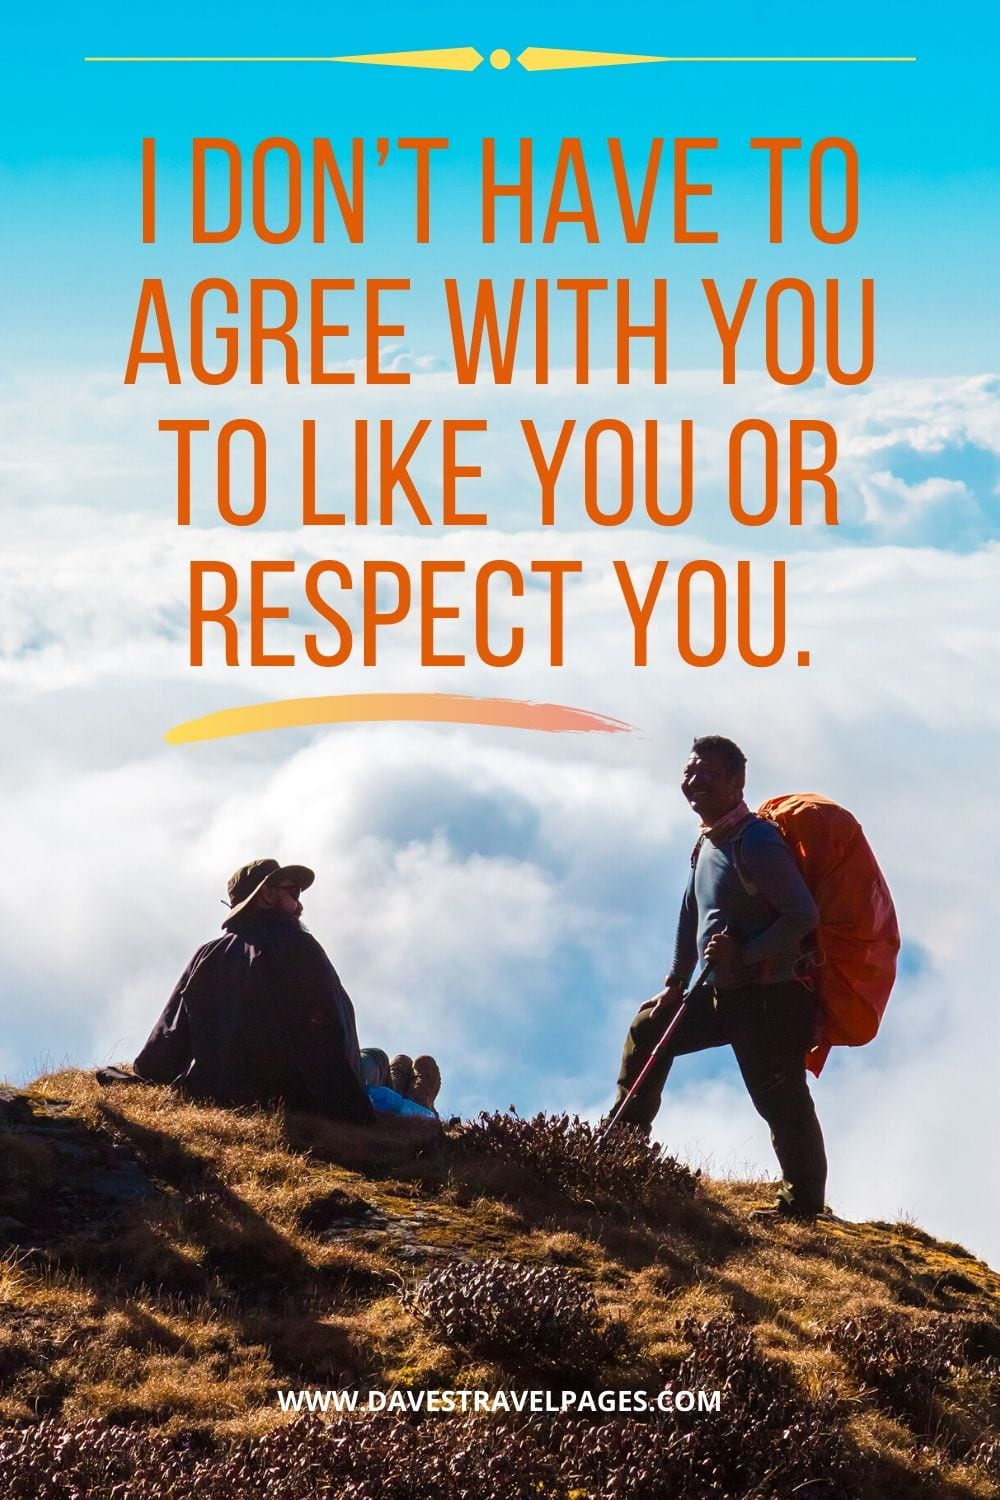 """""""I don't have to agree with you to like you or respect you."""" – Anthony Bourdain quote"""